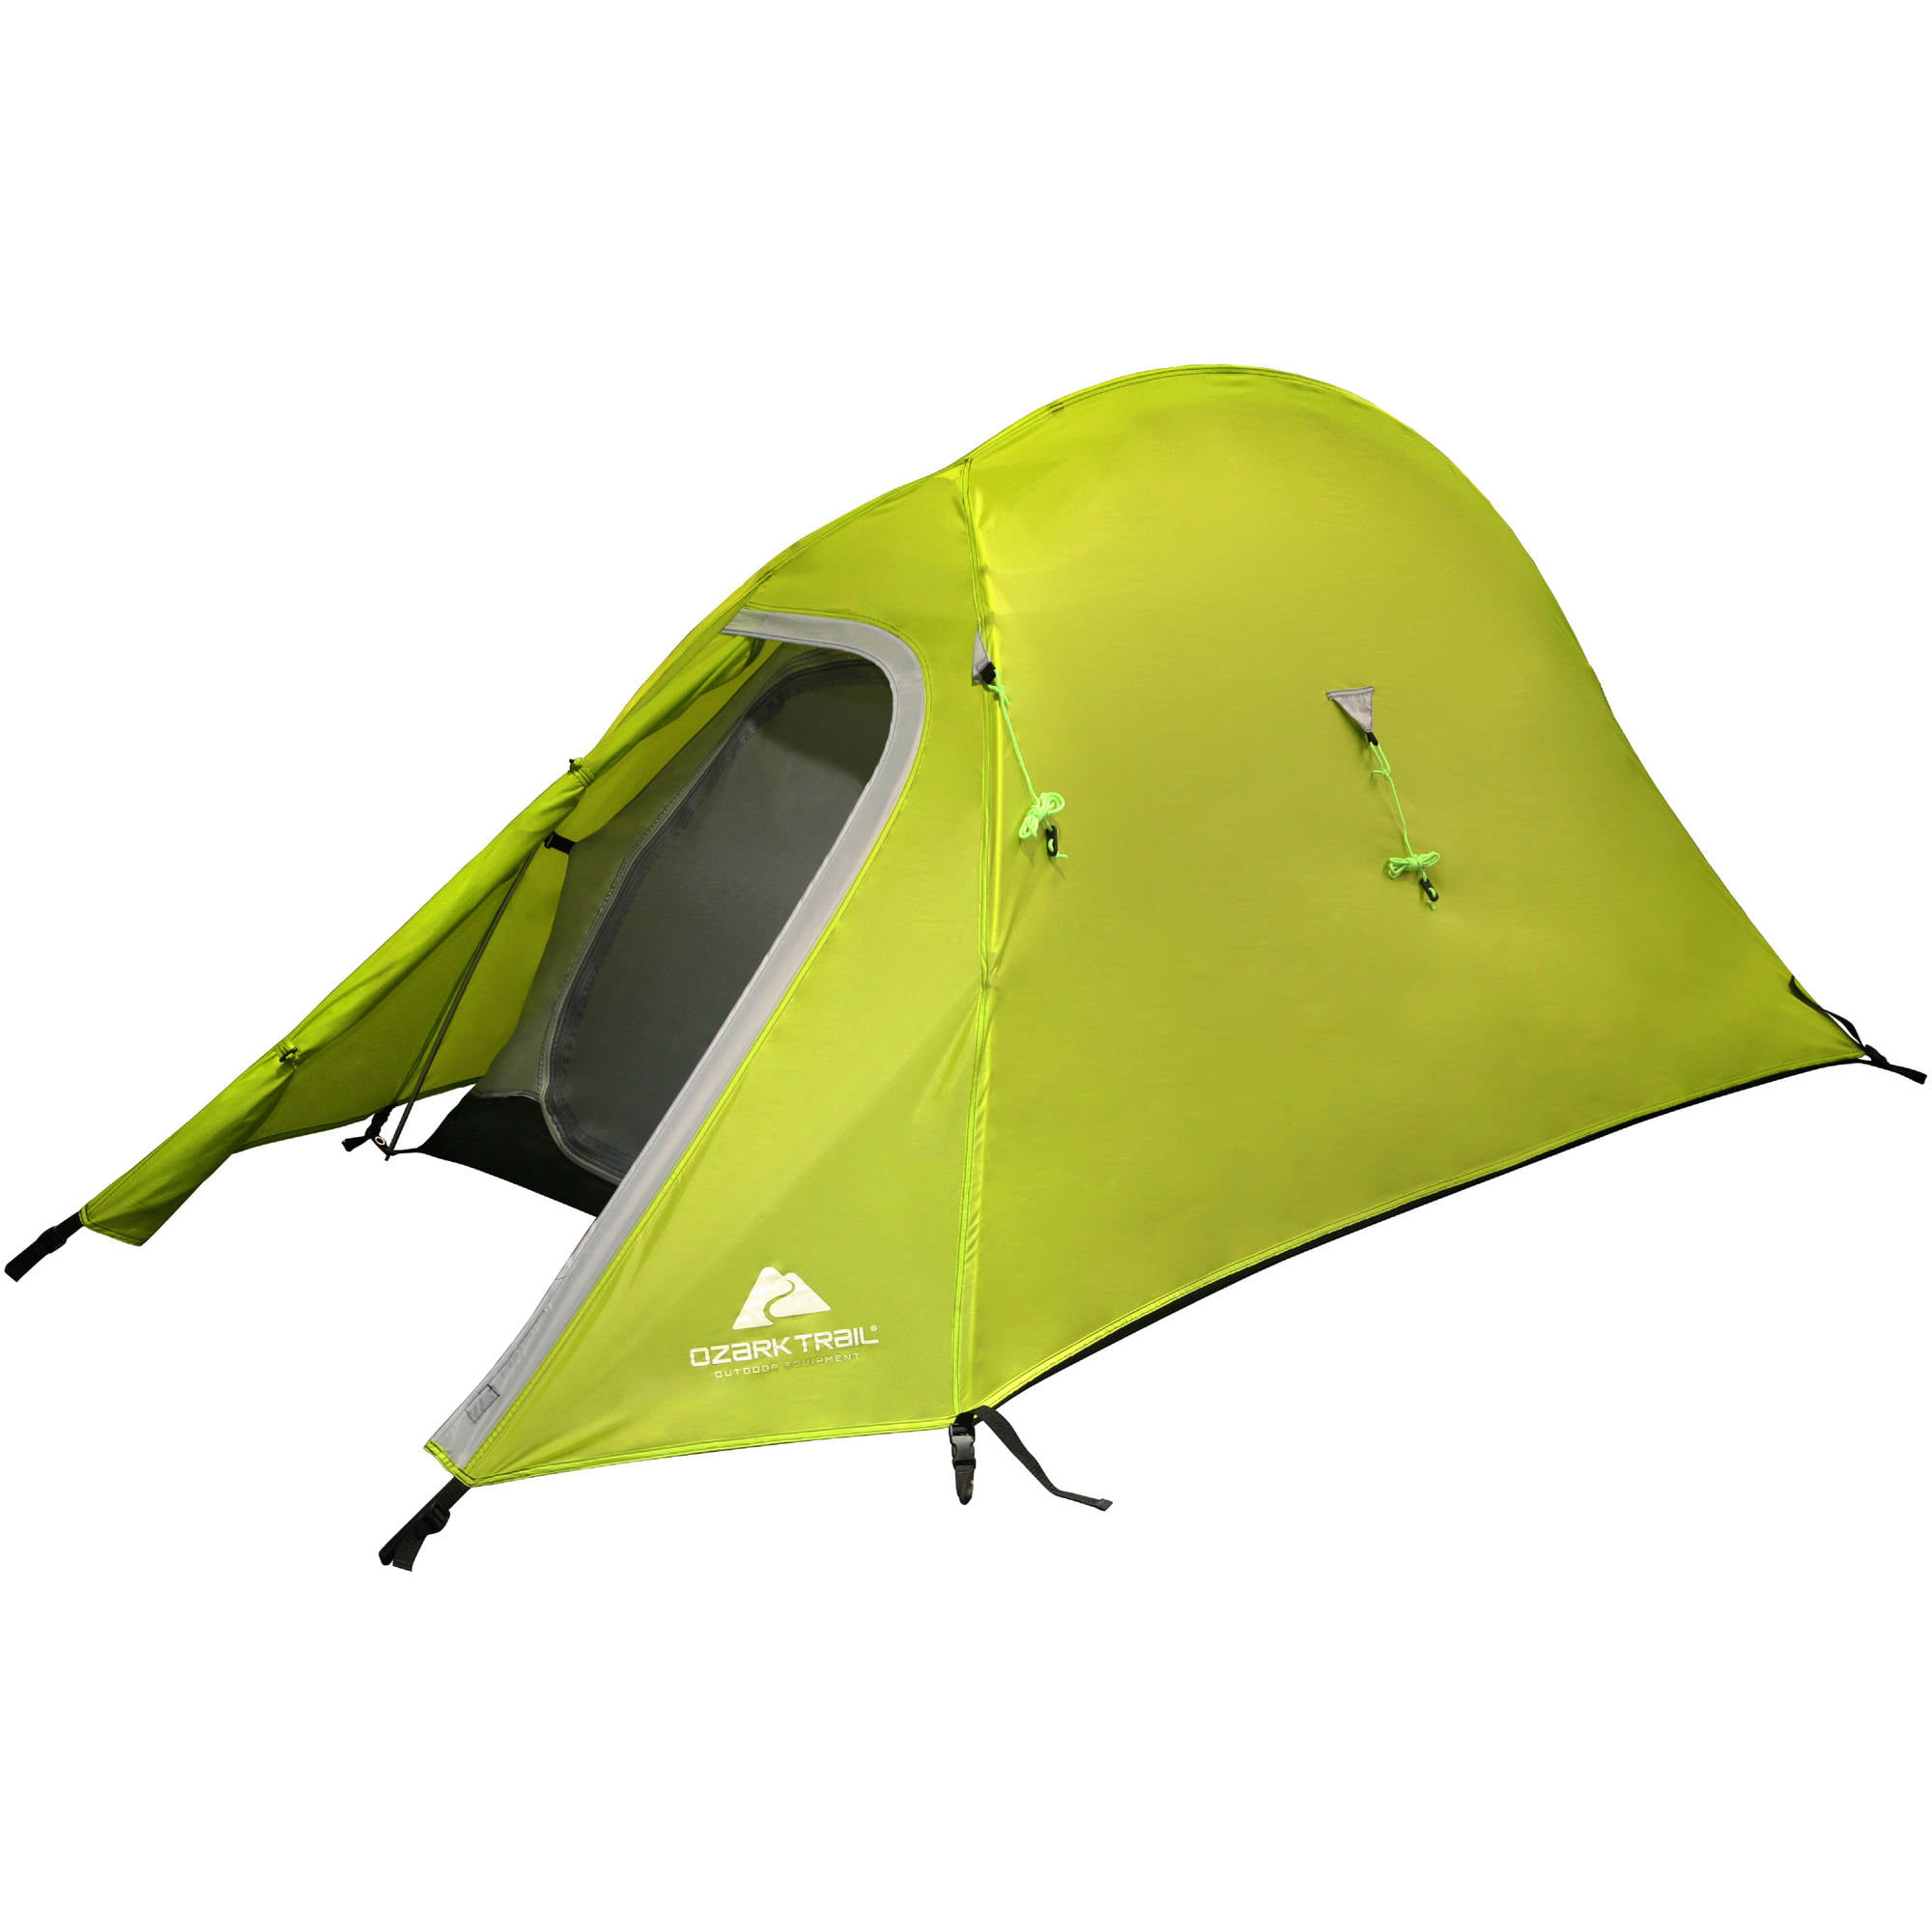 Ozark Trail Ultra Light Back Packing 4u0027 x 7u0027 x 42  Tent with Full Fly Sleeps 1 Green - Walmart.com  sc 1 st  Walmart & Ozark Trail Ultra Light Back Packing 4u0027 x 7u0027 x 42